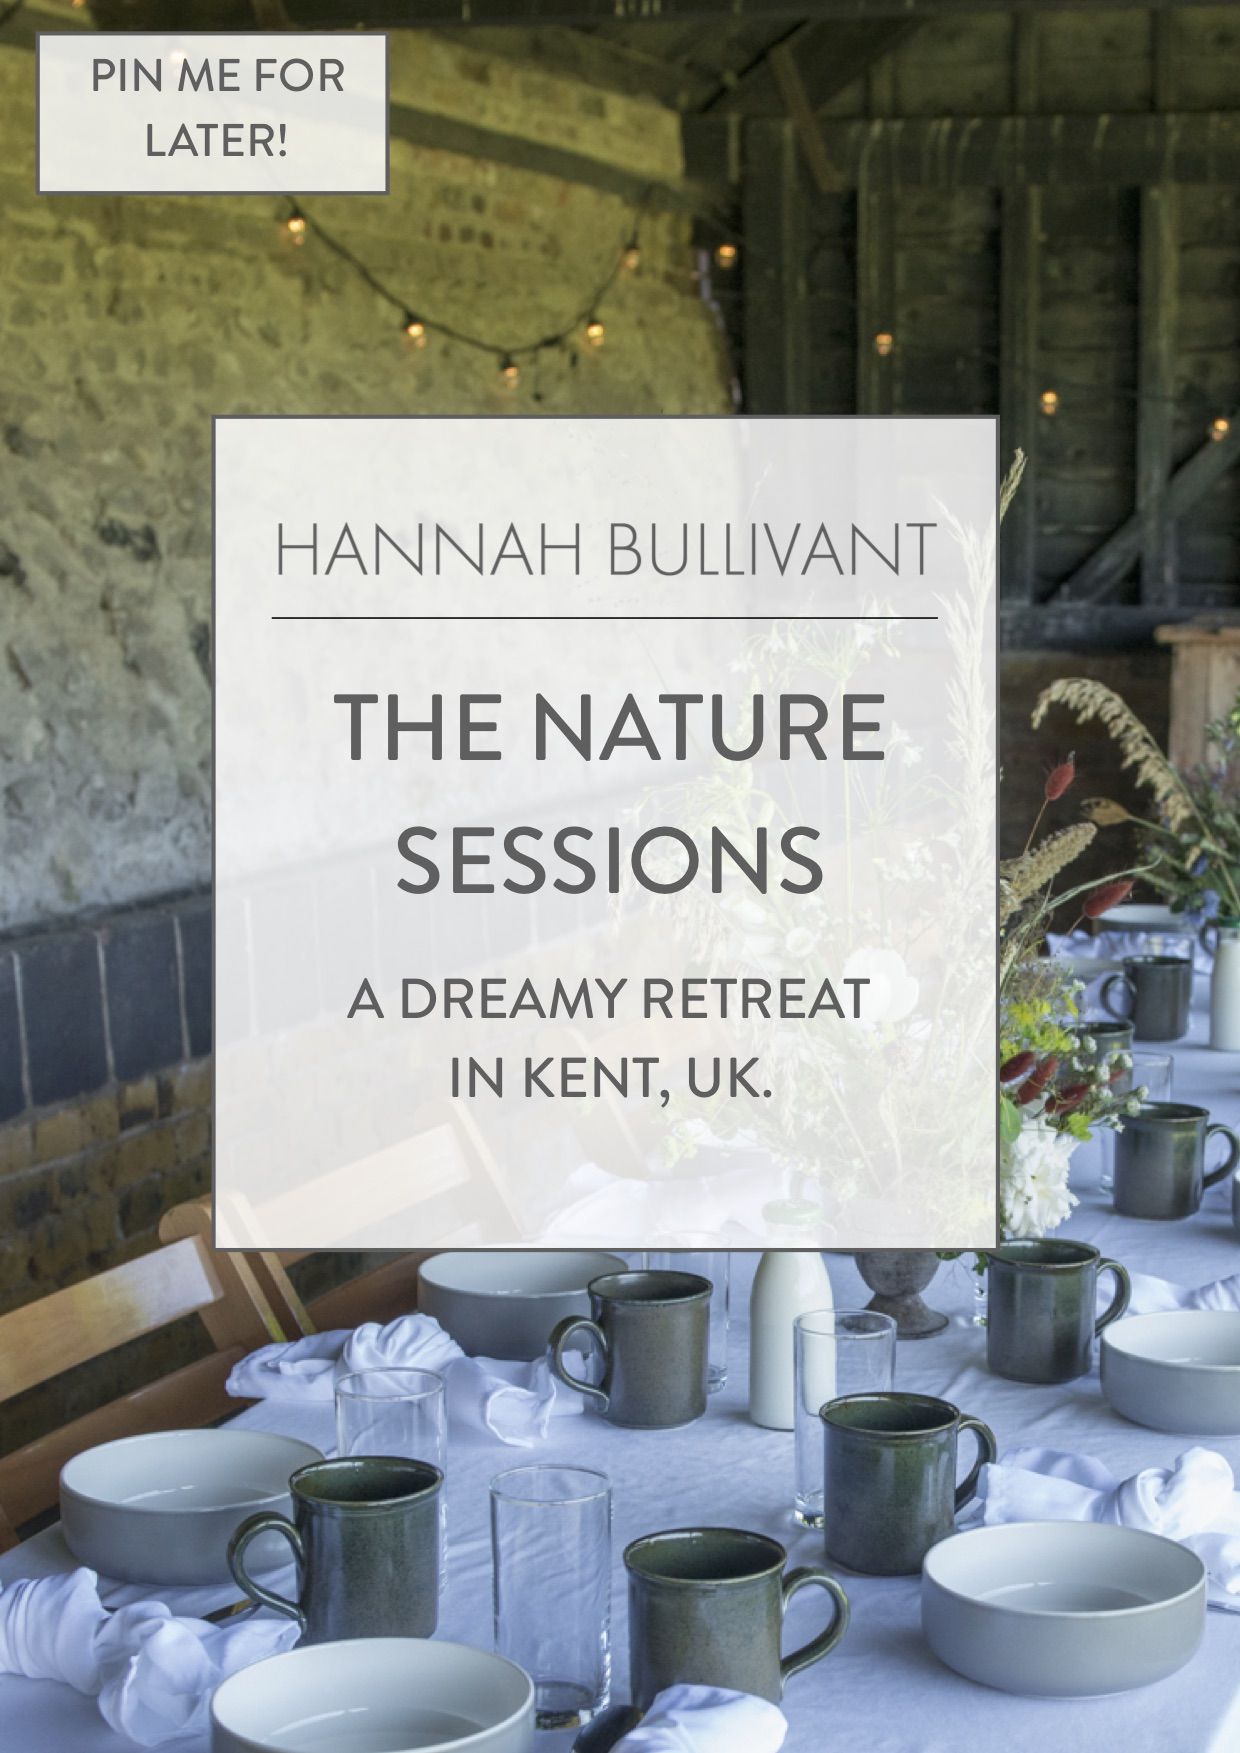 The Nature Sessions, a dreamy 3 day retreat in Kent